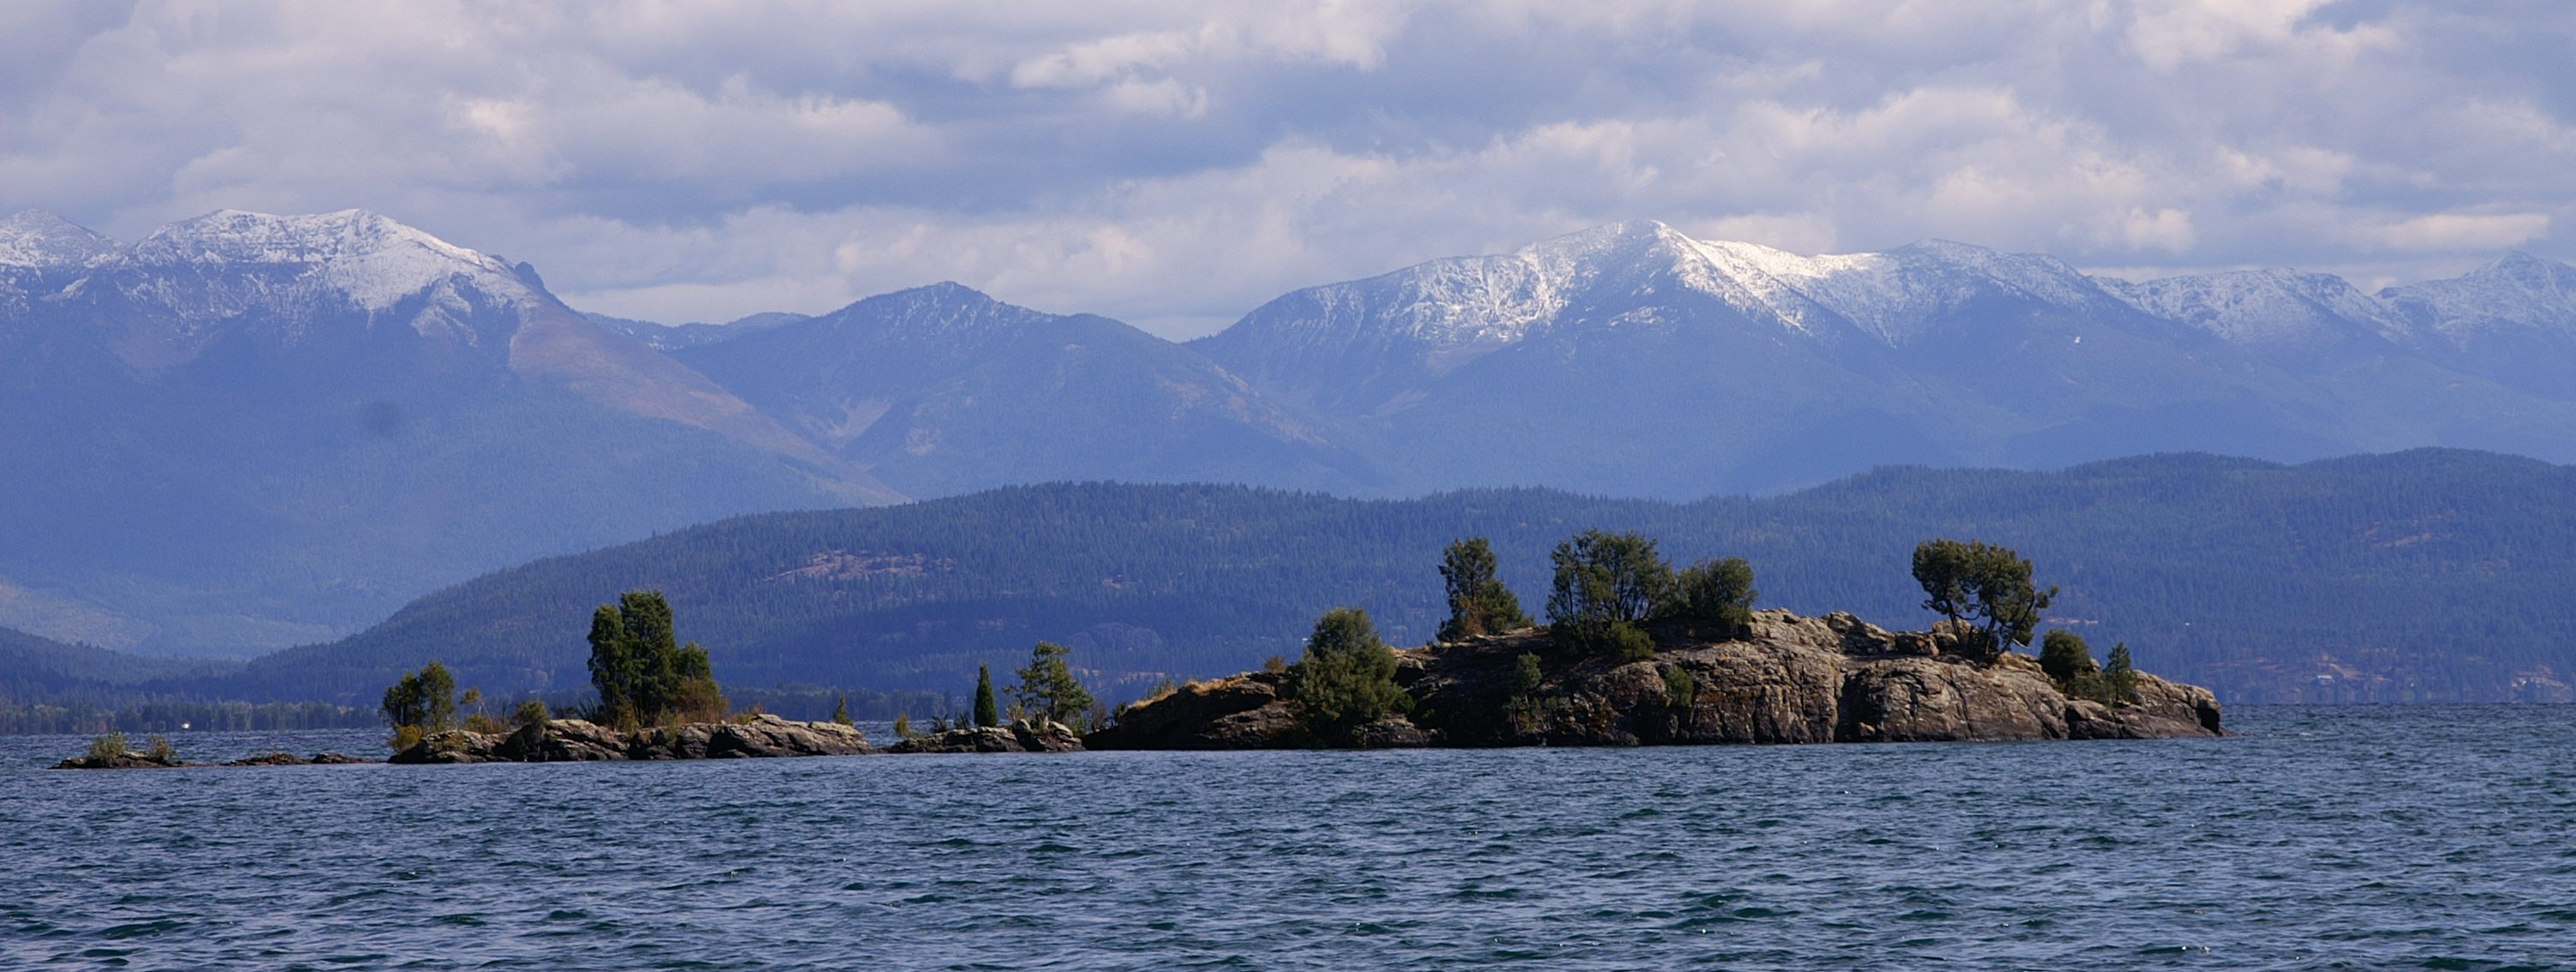 Flathead Lake, Montana, FLOW Swimmers